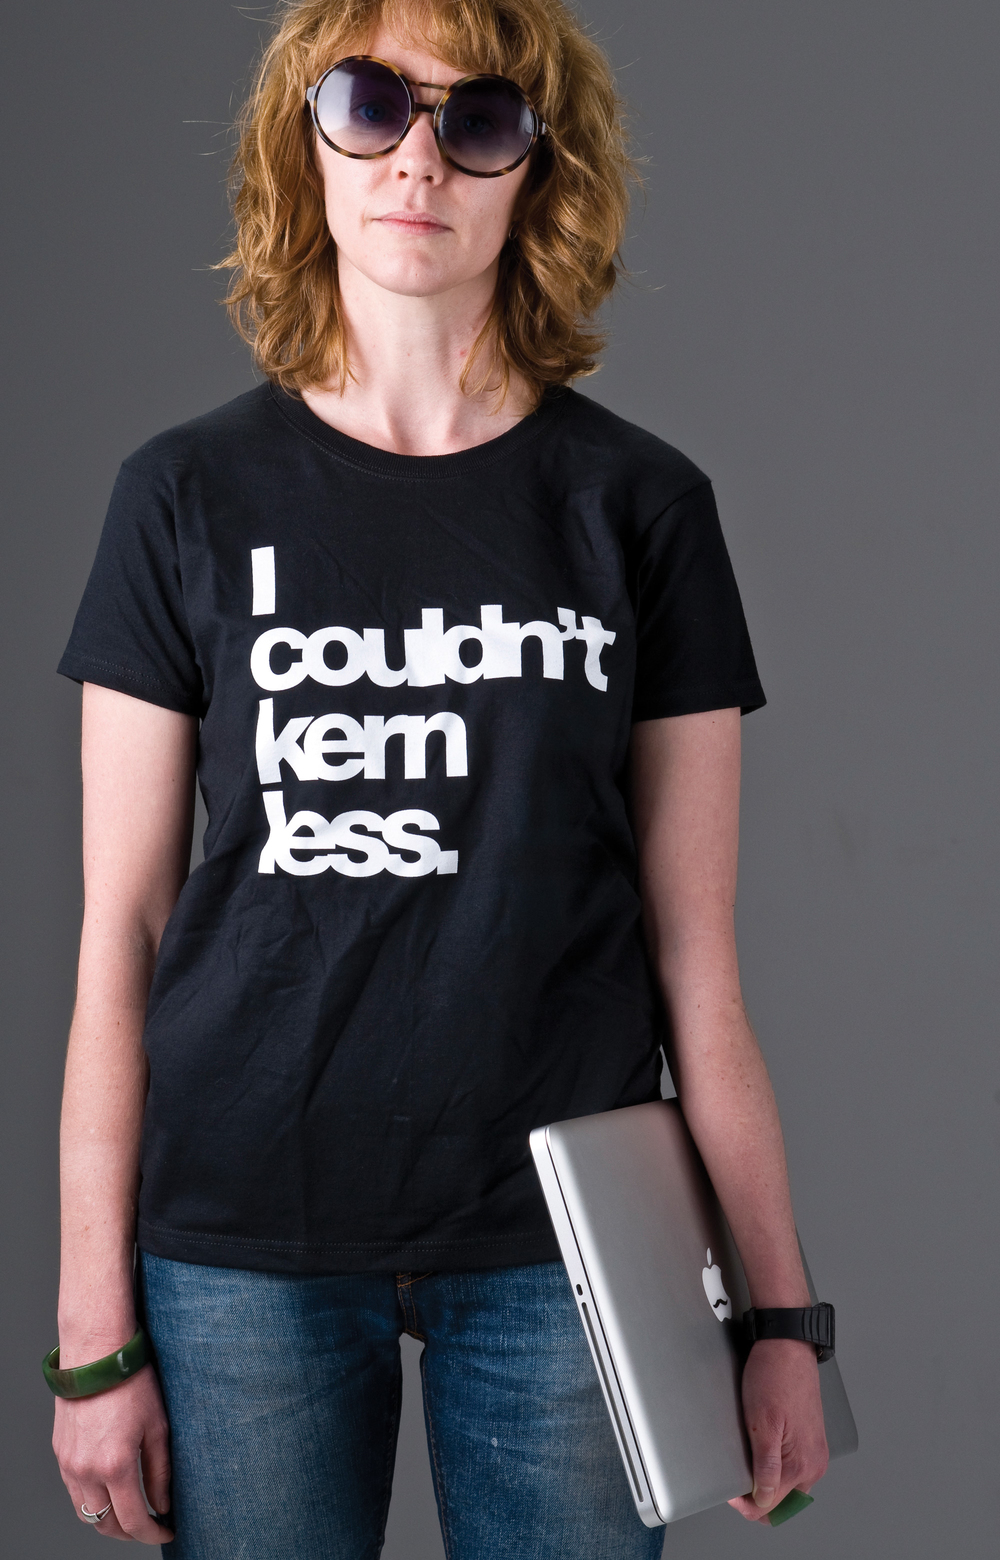 I Couldn't Kern Less T-Shirts available to purchase here